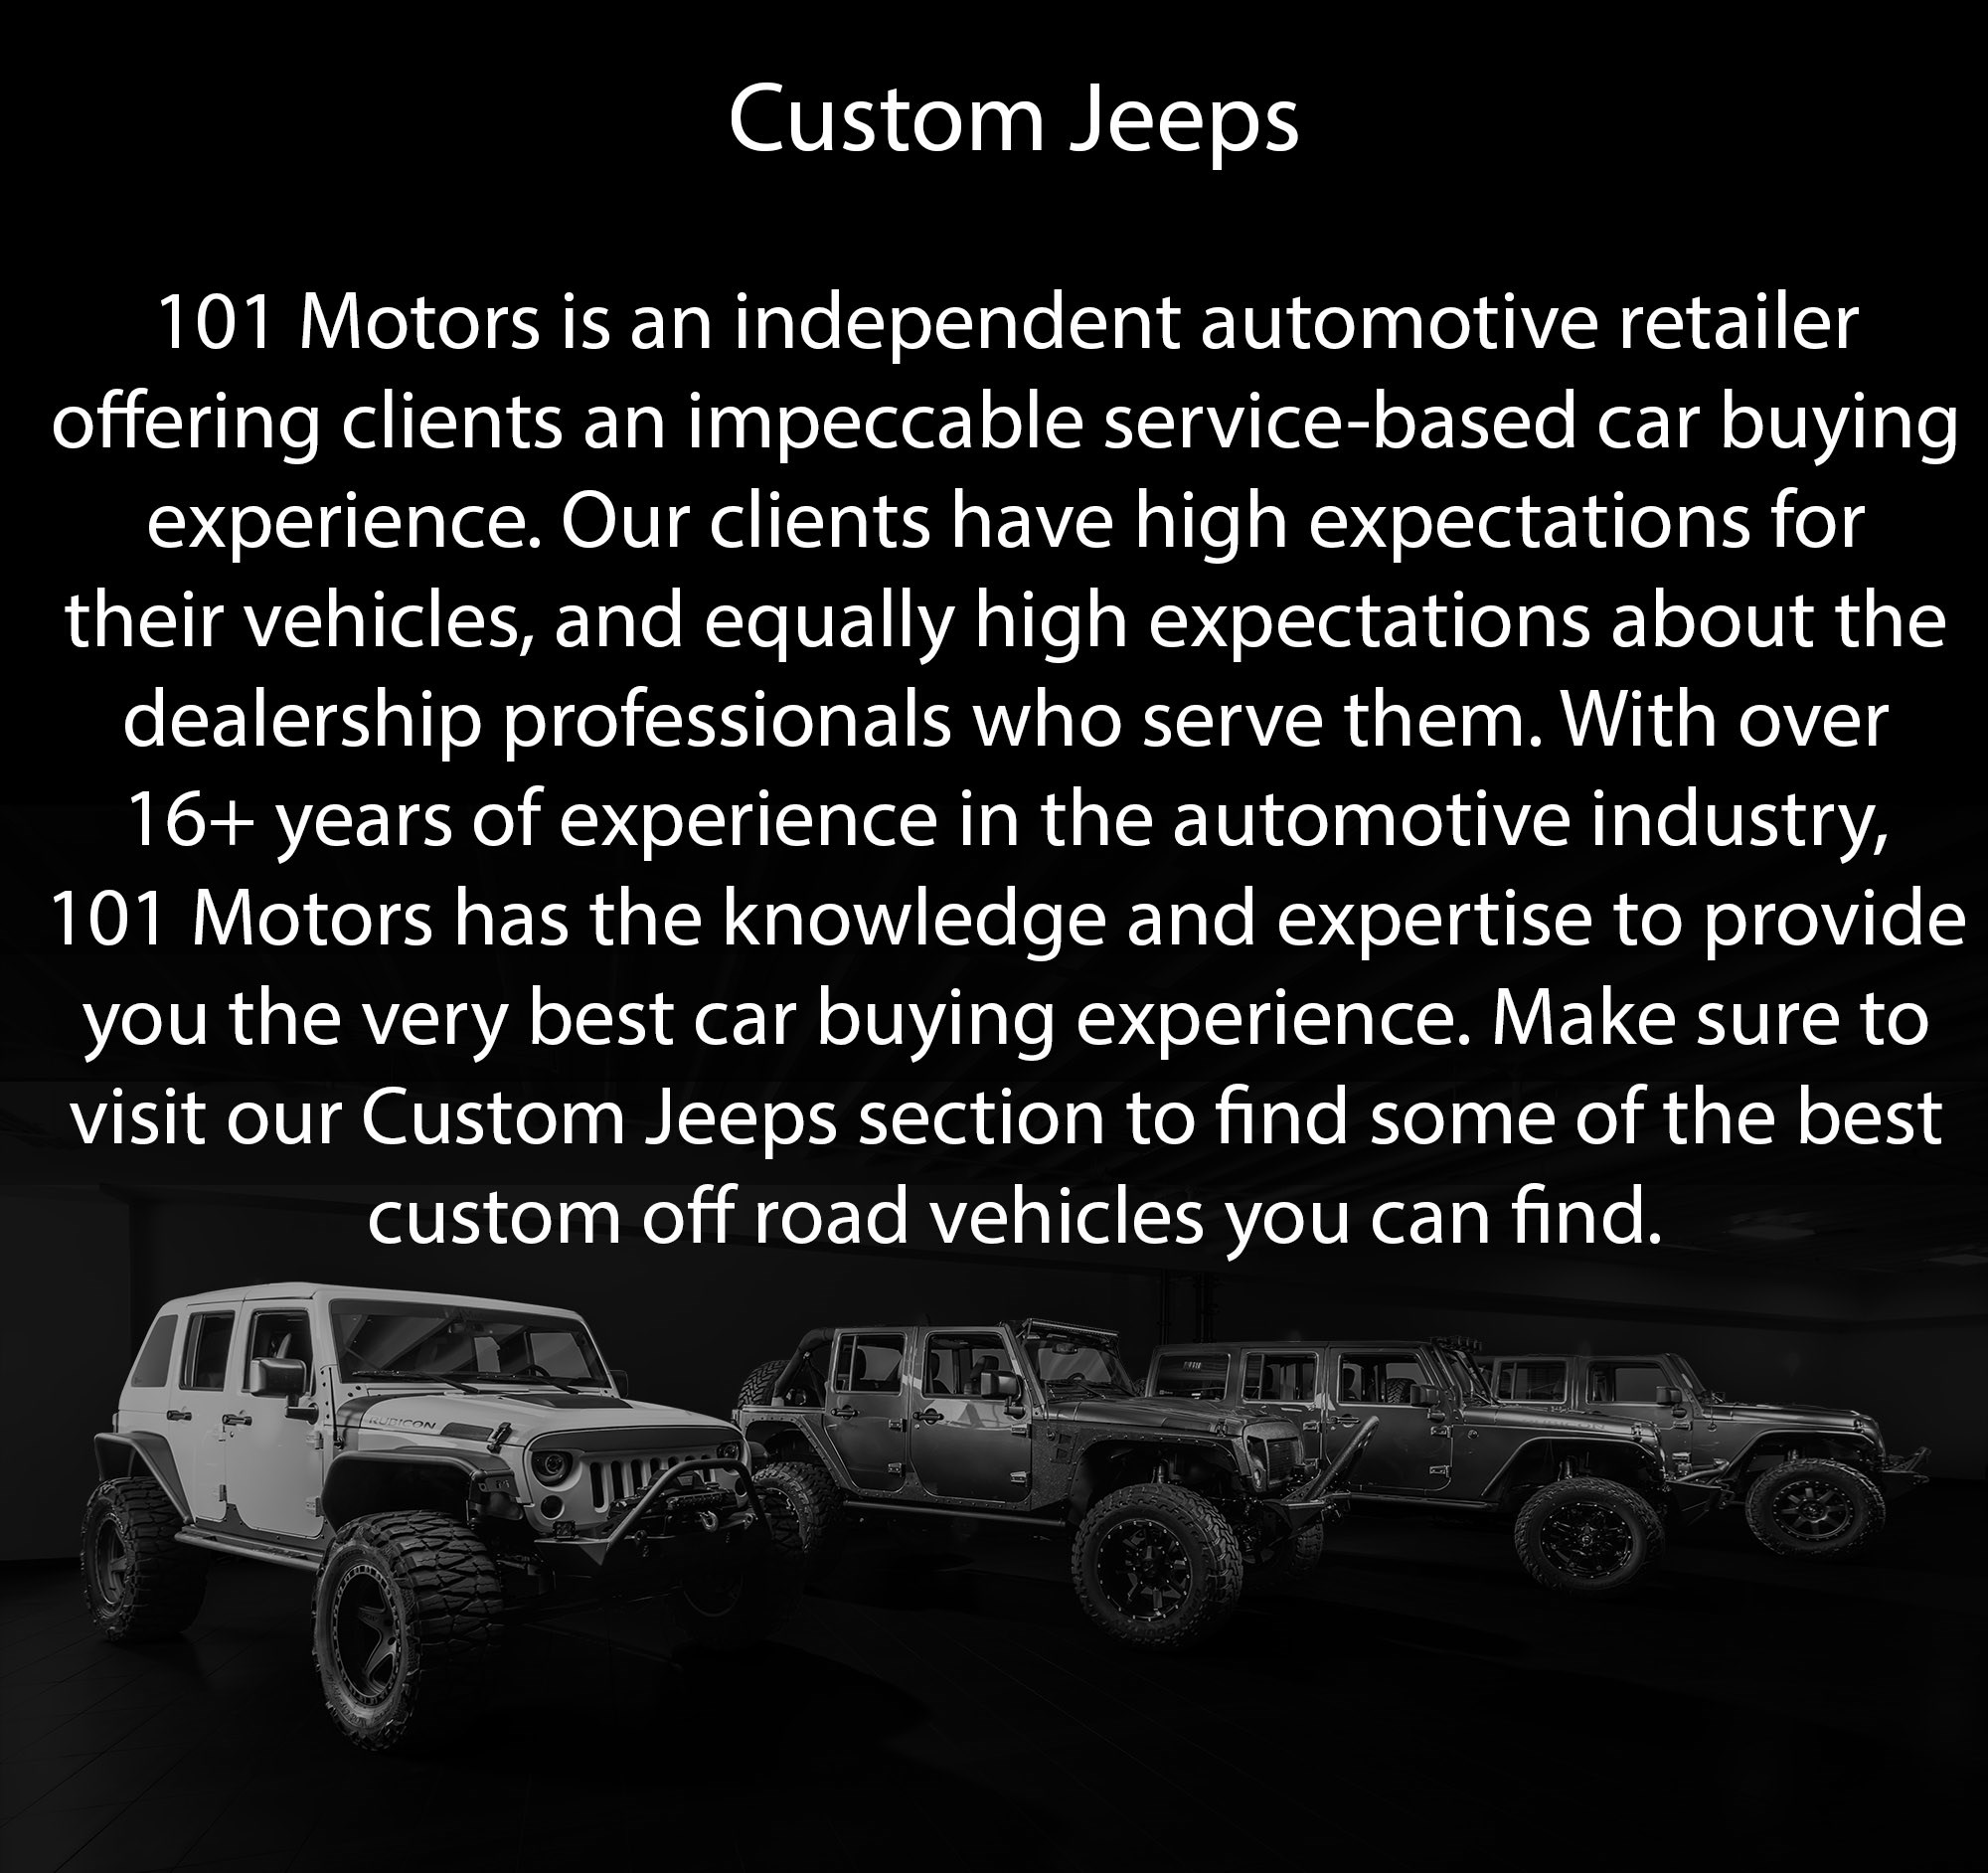 Custom jeep, Wrapped jeep, lifted jeep, JK jeep, custom jk, supercharged jeep, forced induction jeep, rock crawler, off road, off road custom, jeep life, mohab rock crawl, metal cloak, teraflex, AEV, toyo tires jeep, fuel wheels, LRG, XD wheels jeep, smitty built